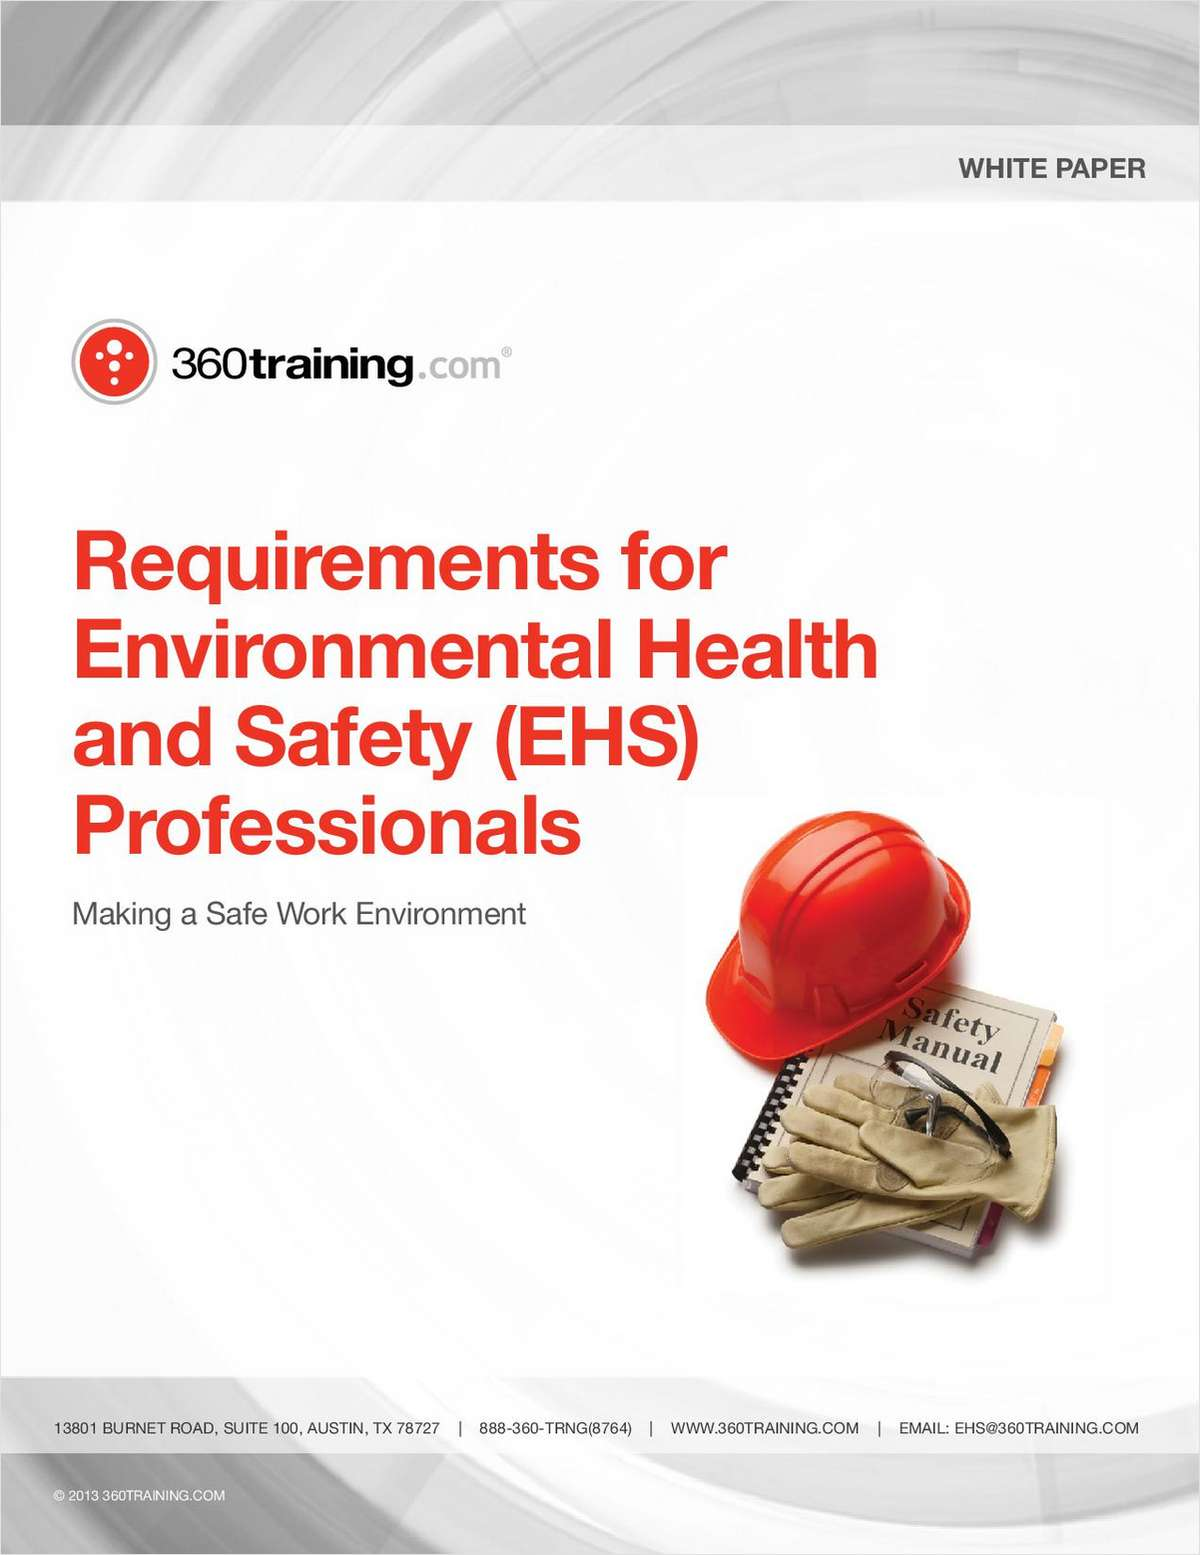 Requirements for Environmental Health and Safety (EHS) Professionals